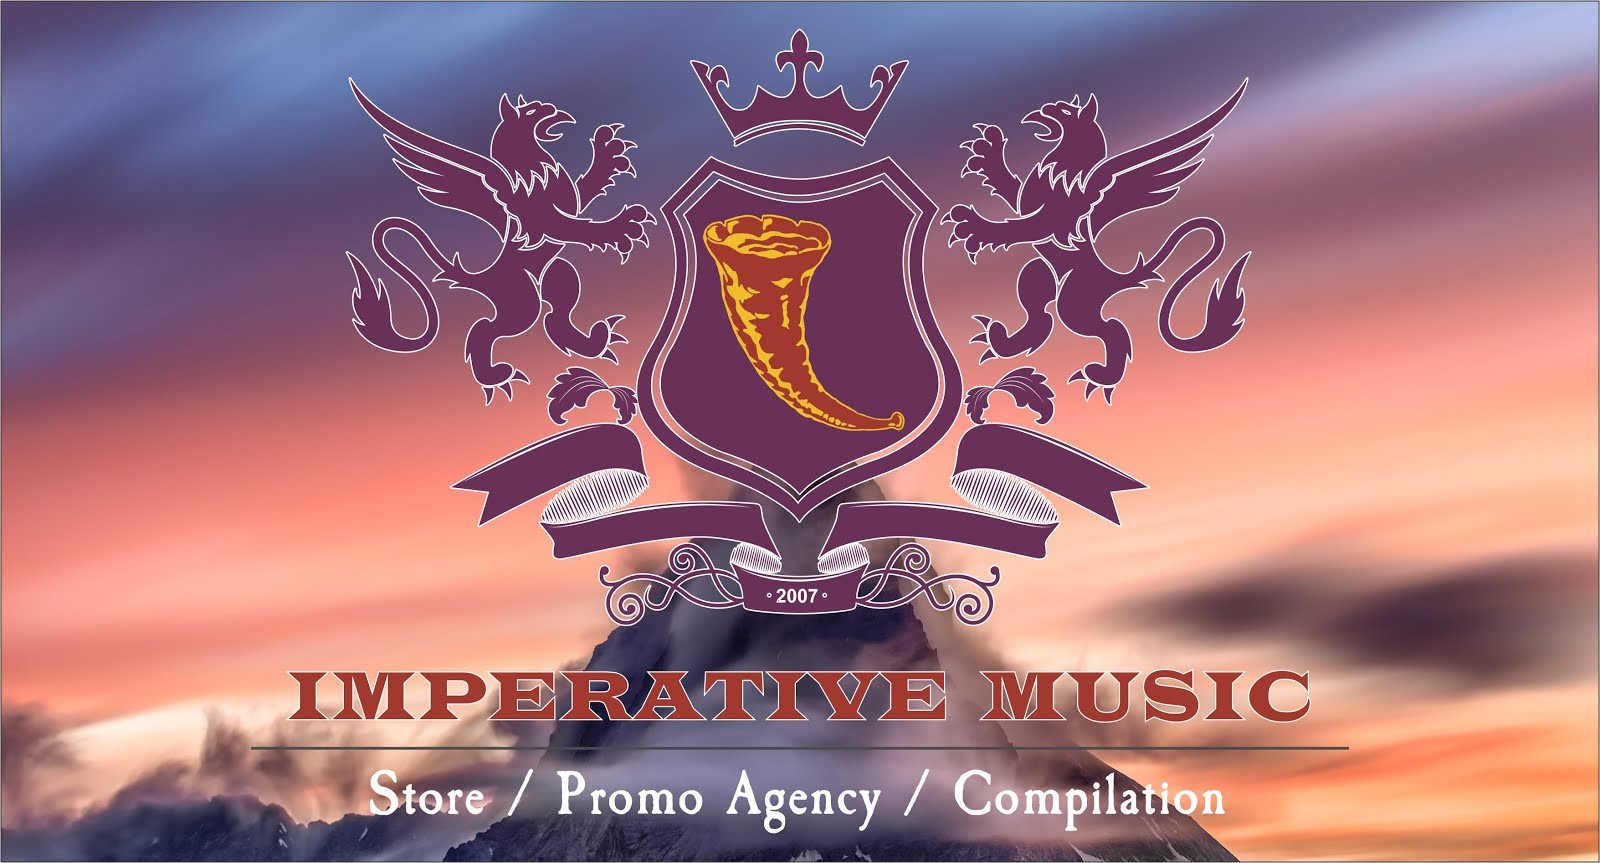 Imperative Music Worldwide